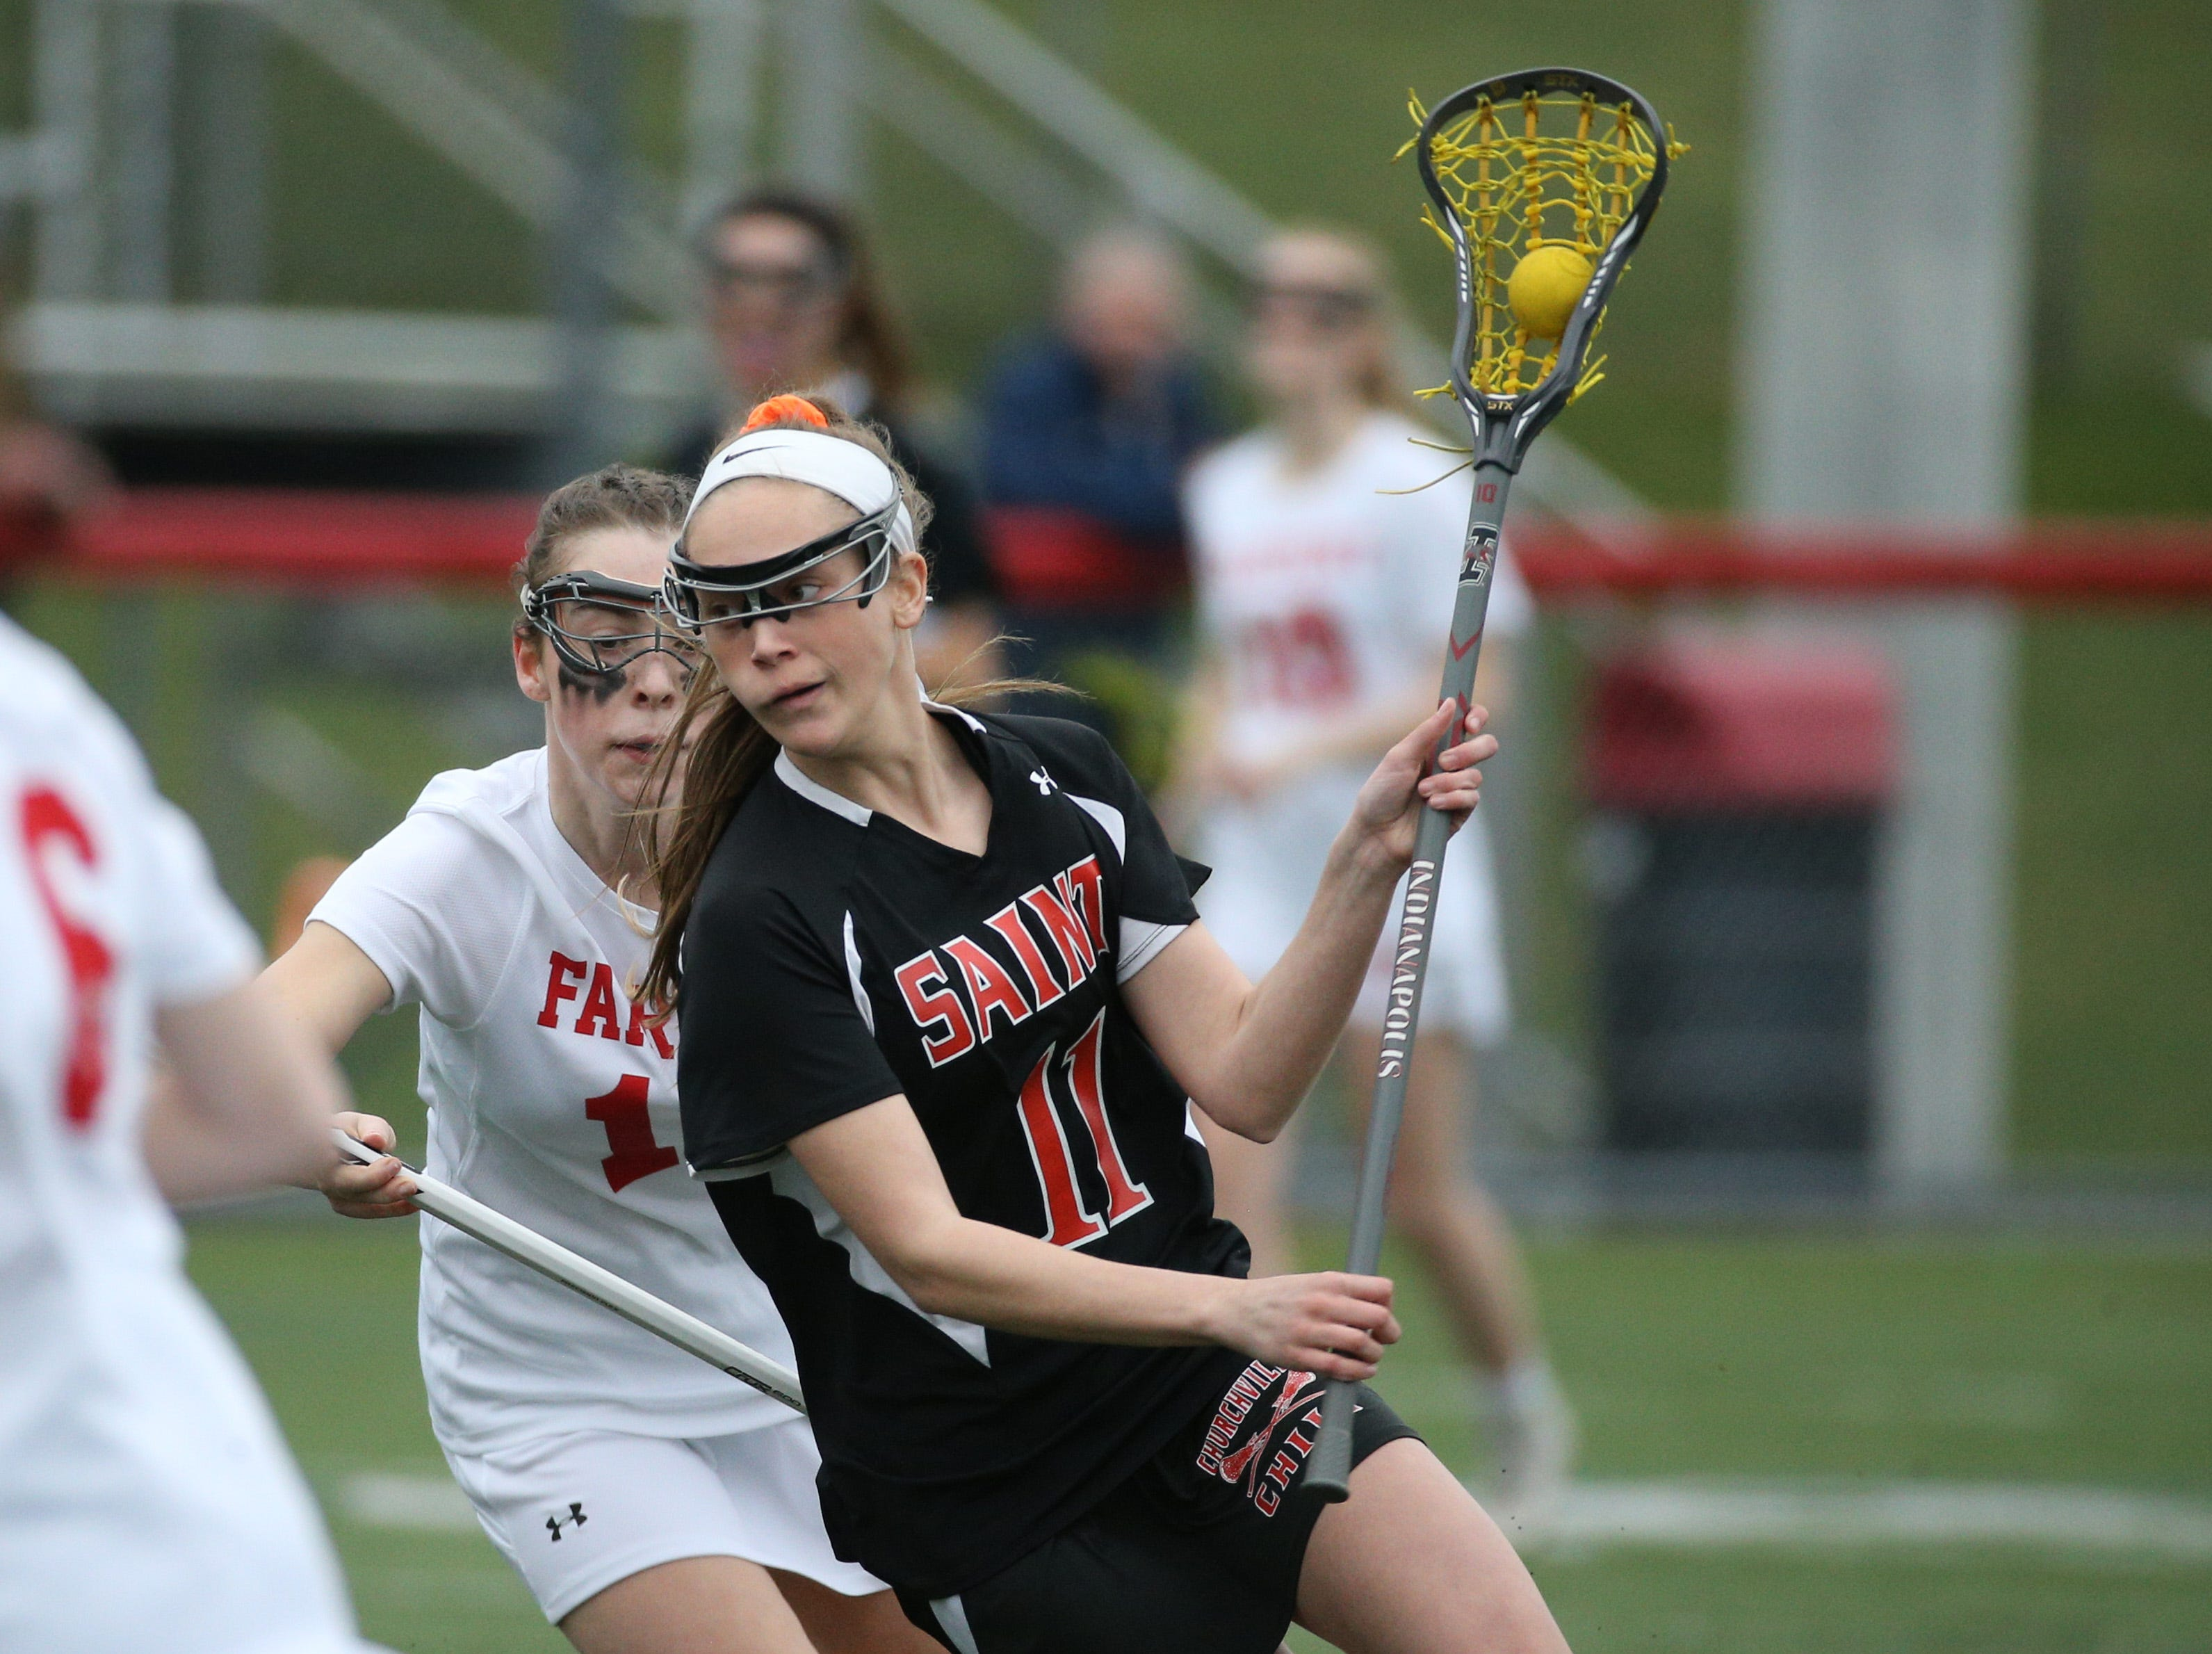 Churchville-Chili's Kayla Wiest carries the ball against Fairport.